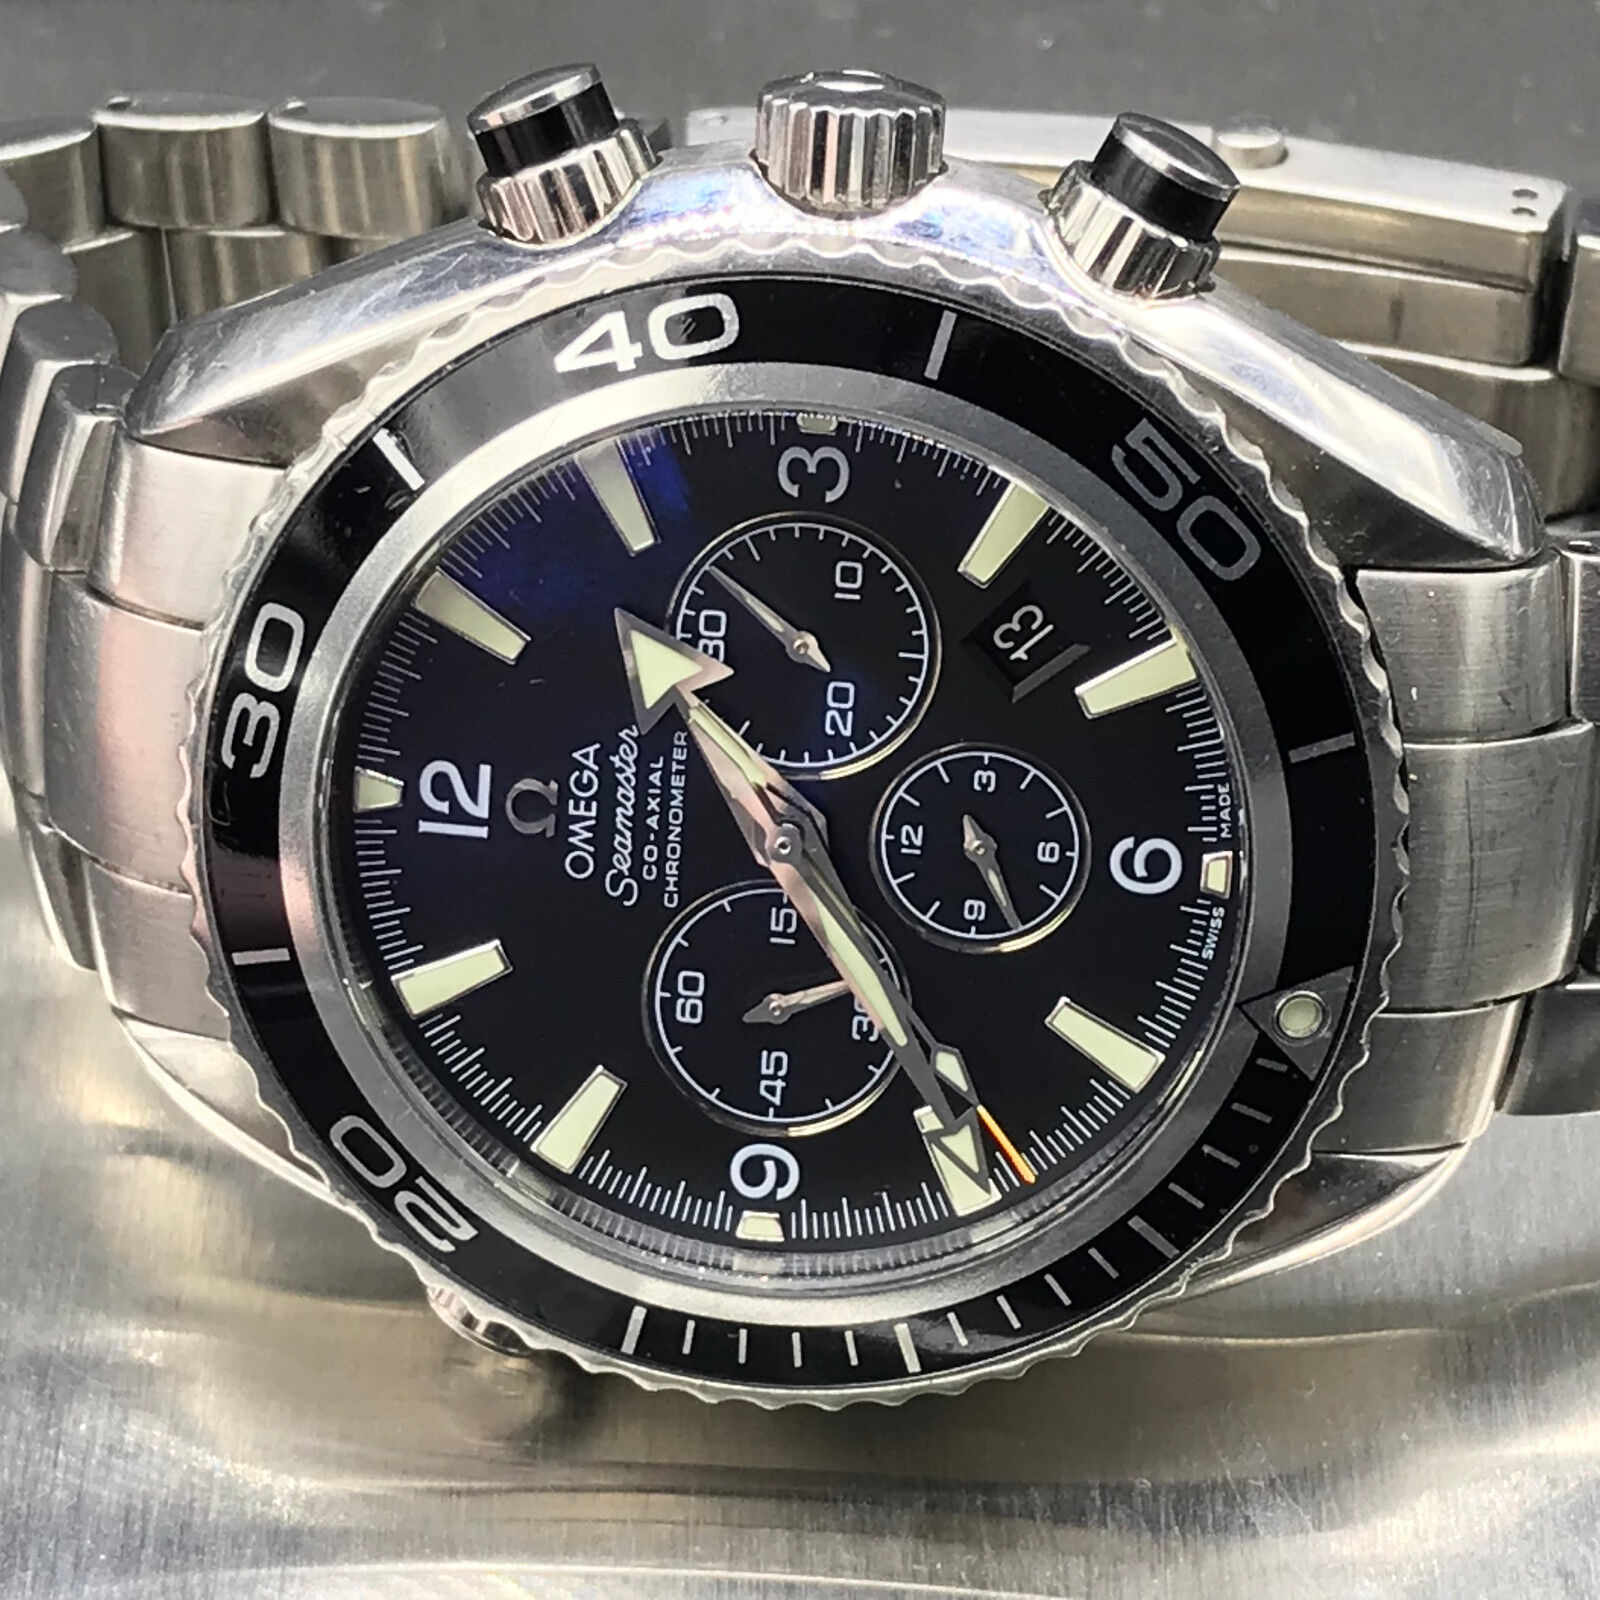 Omega Seamaster Planet Ocean 45mm Triple Chronograph Watch - watch picture 1